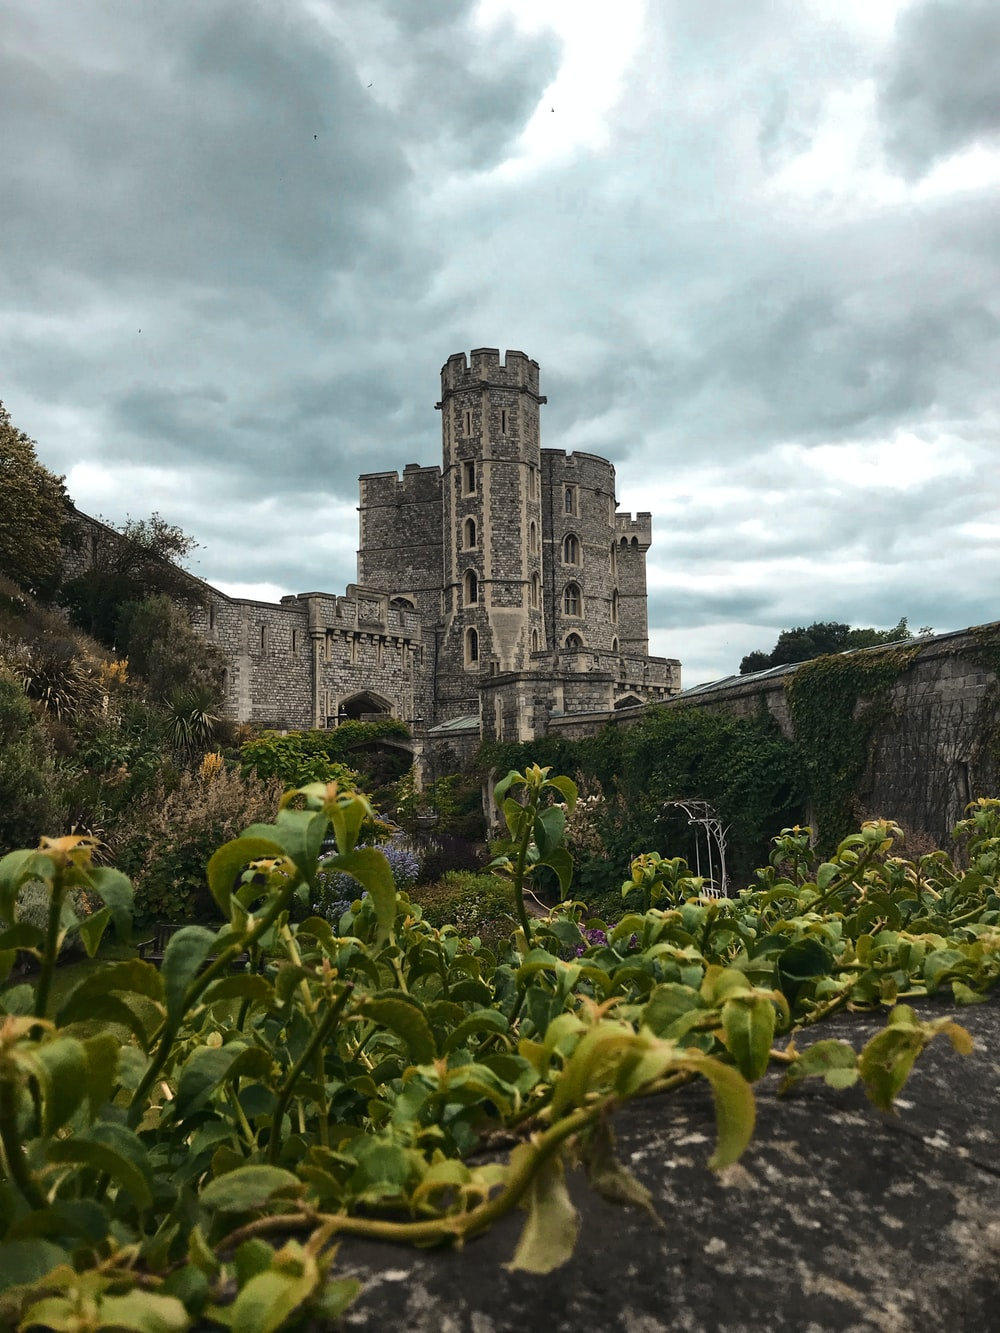 green plants near gray concrete castle under cloudy sky during daytime